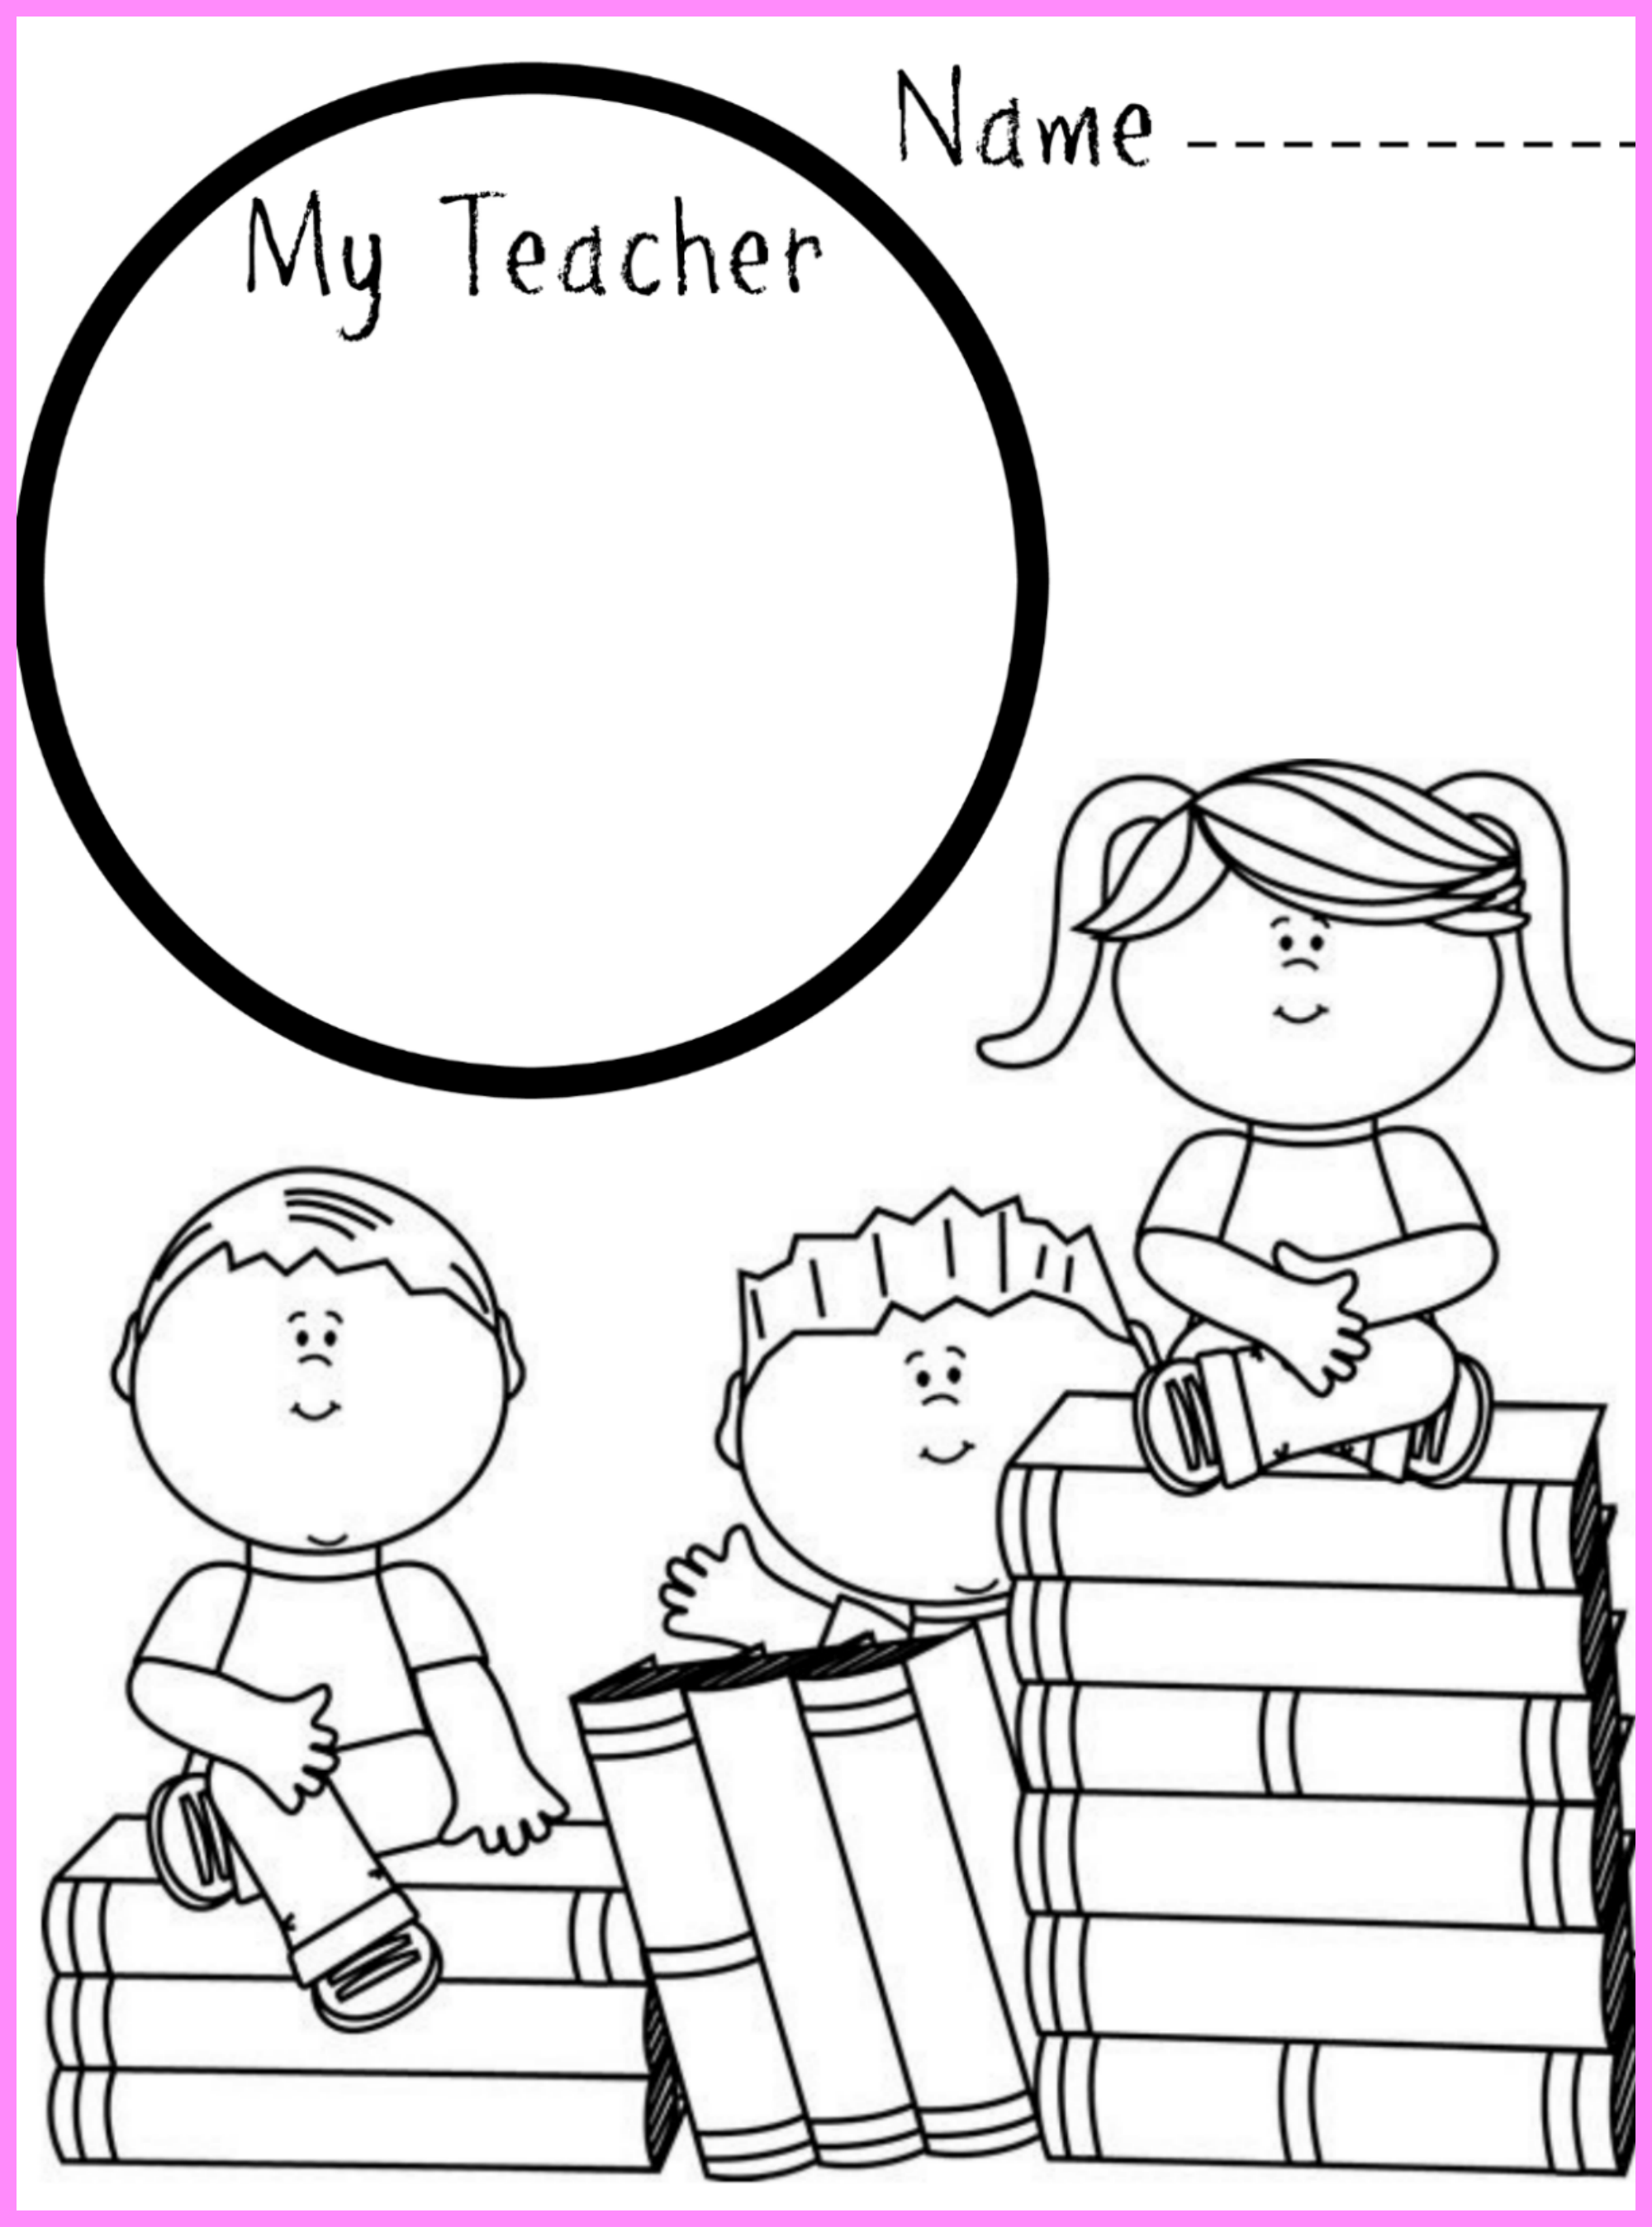 first day of school drawing and coloring printable - Children Printables